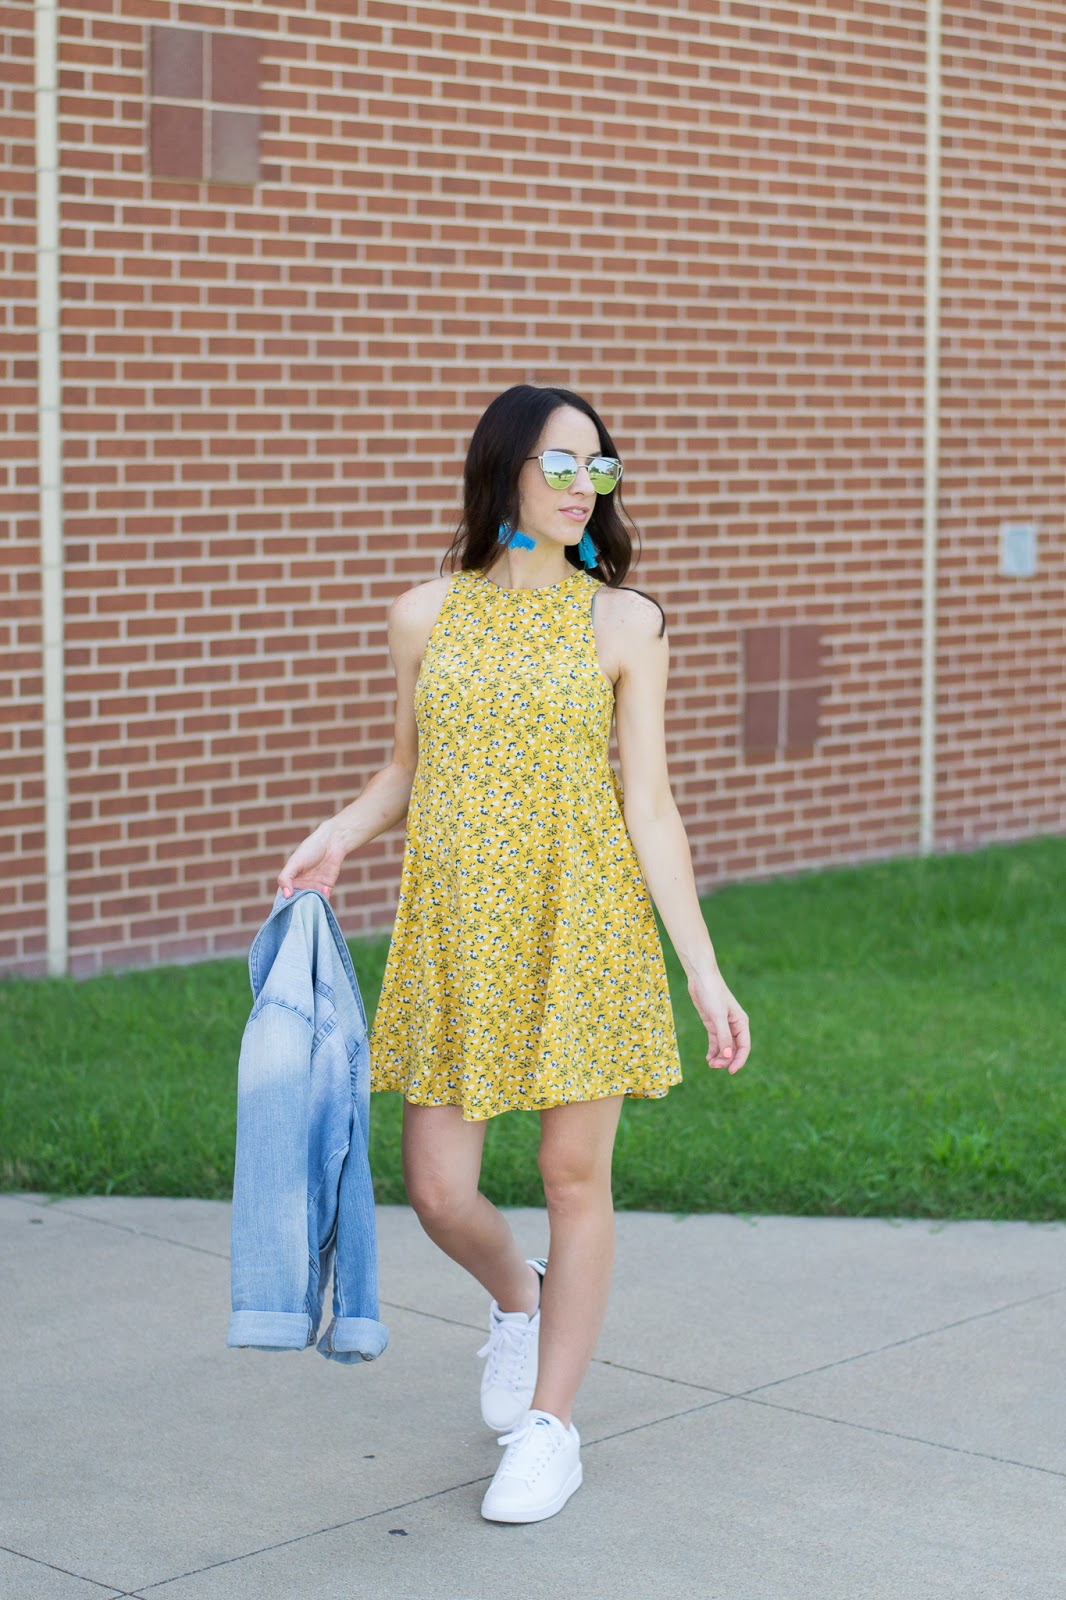 Wearing sneakers and a summer dress